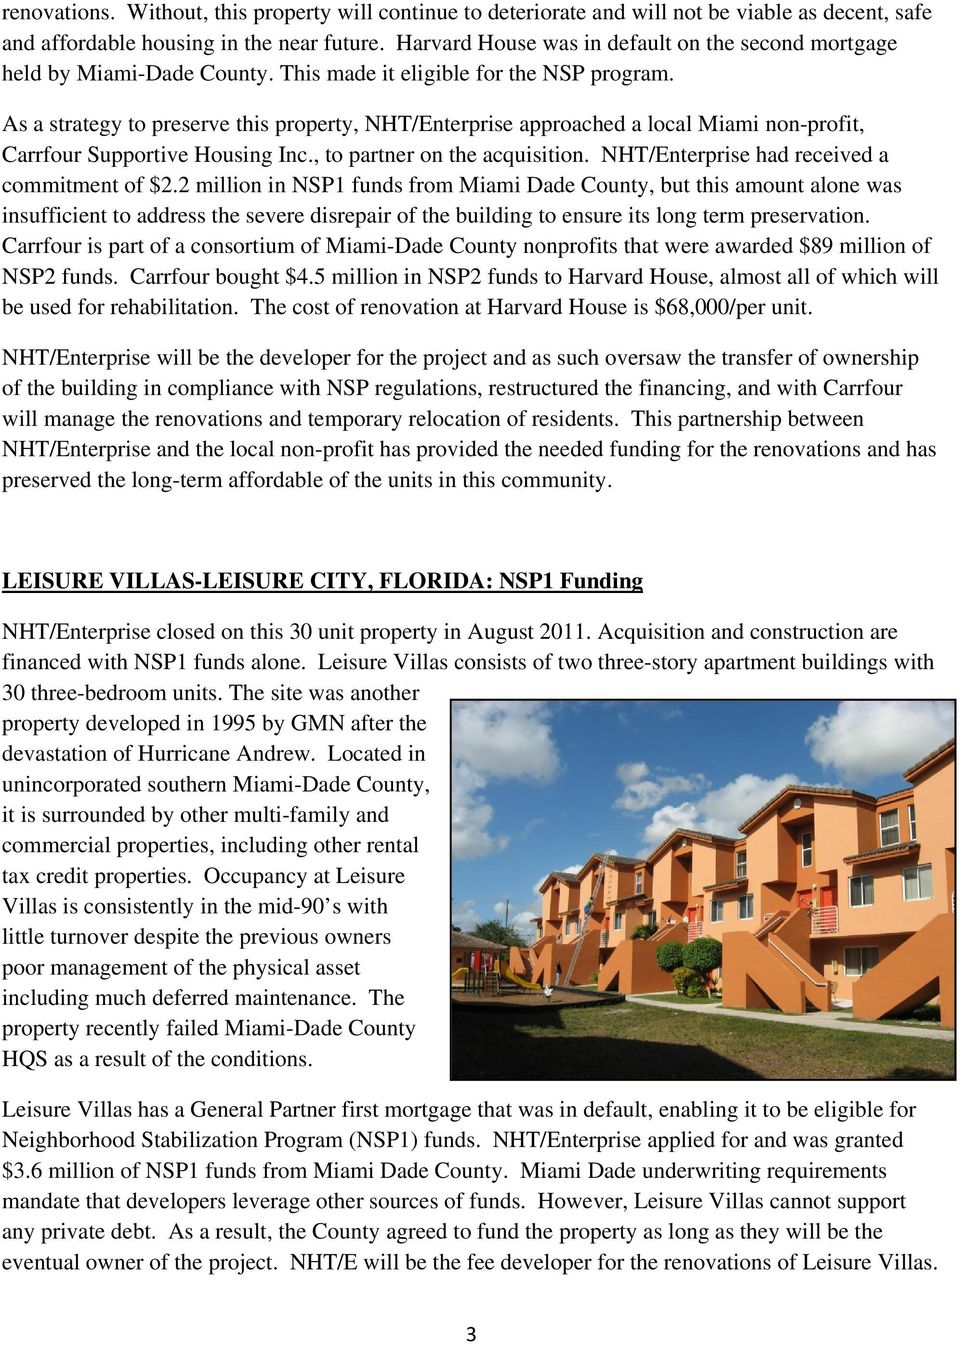 As a strategy to preserve this property, NHT/Enterprise approached a local Miami non-profit, Carrfour Supportive Housing Inc., to partner on the acquisition.